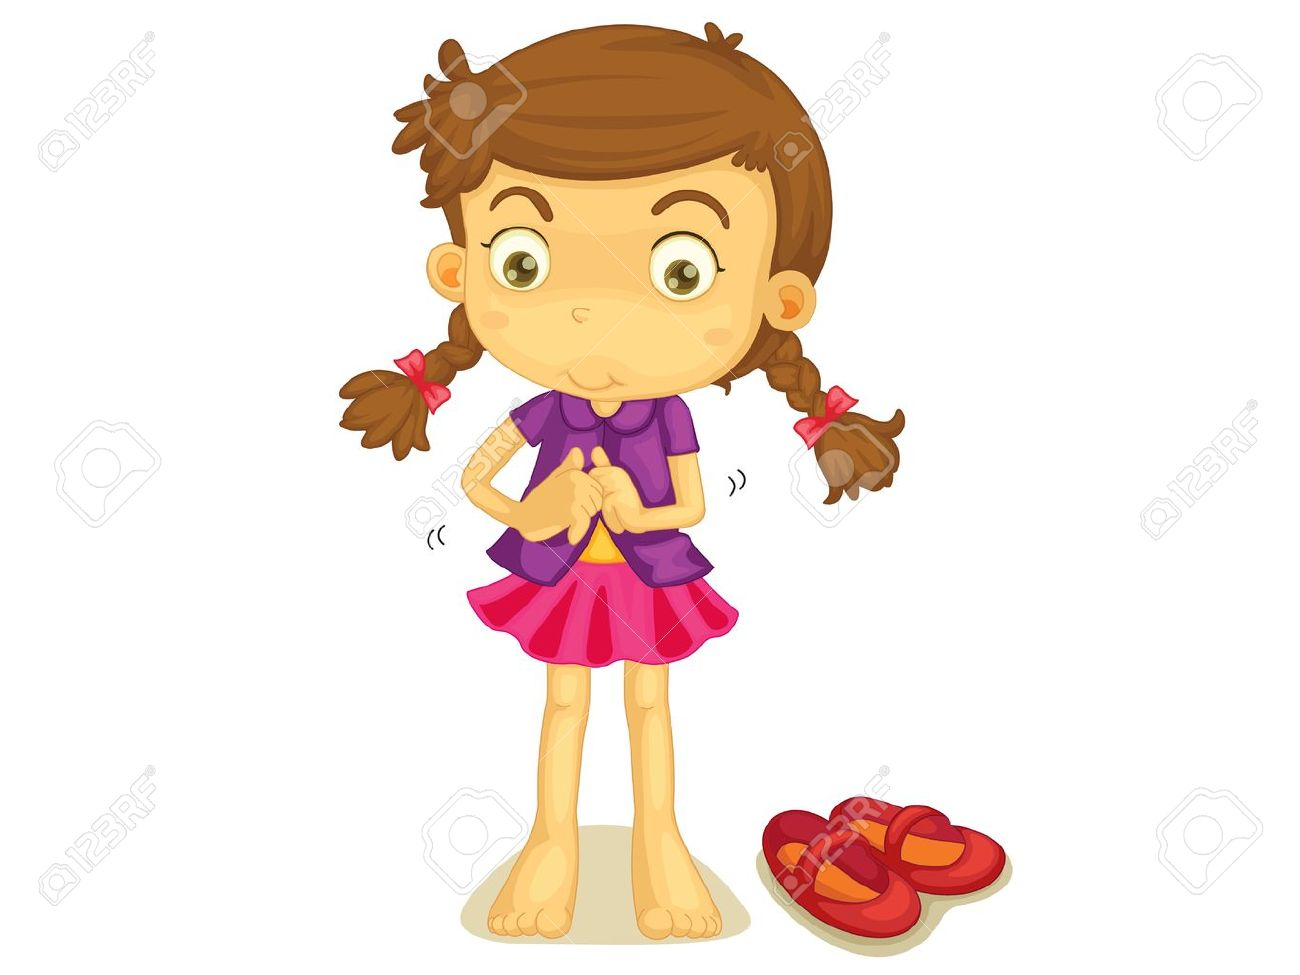 illustration of a girl getting dressed royalty free cliparts rh 123rf com get dressed clipart girl get dressed clipart girl